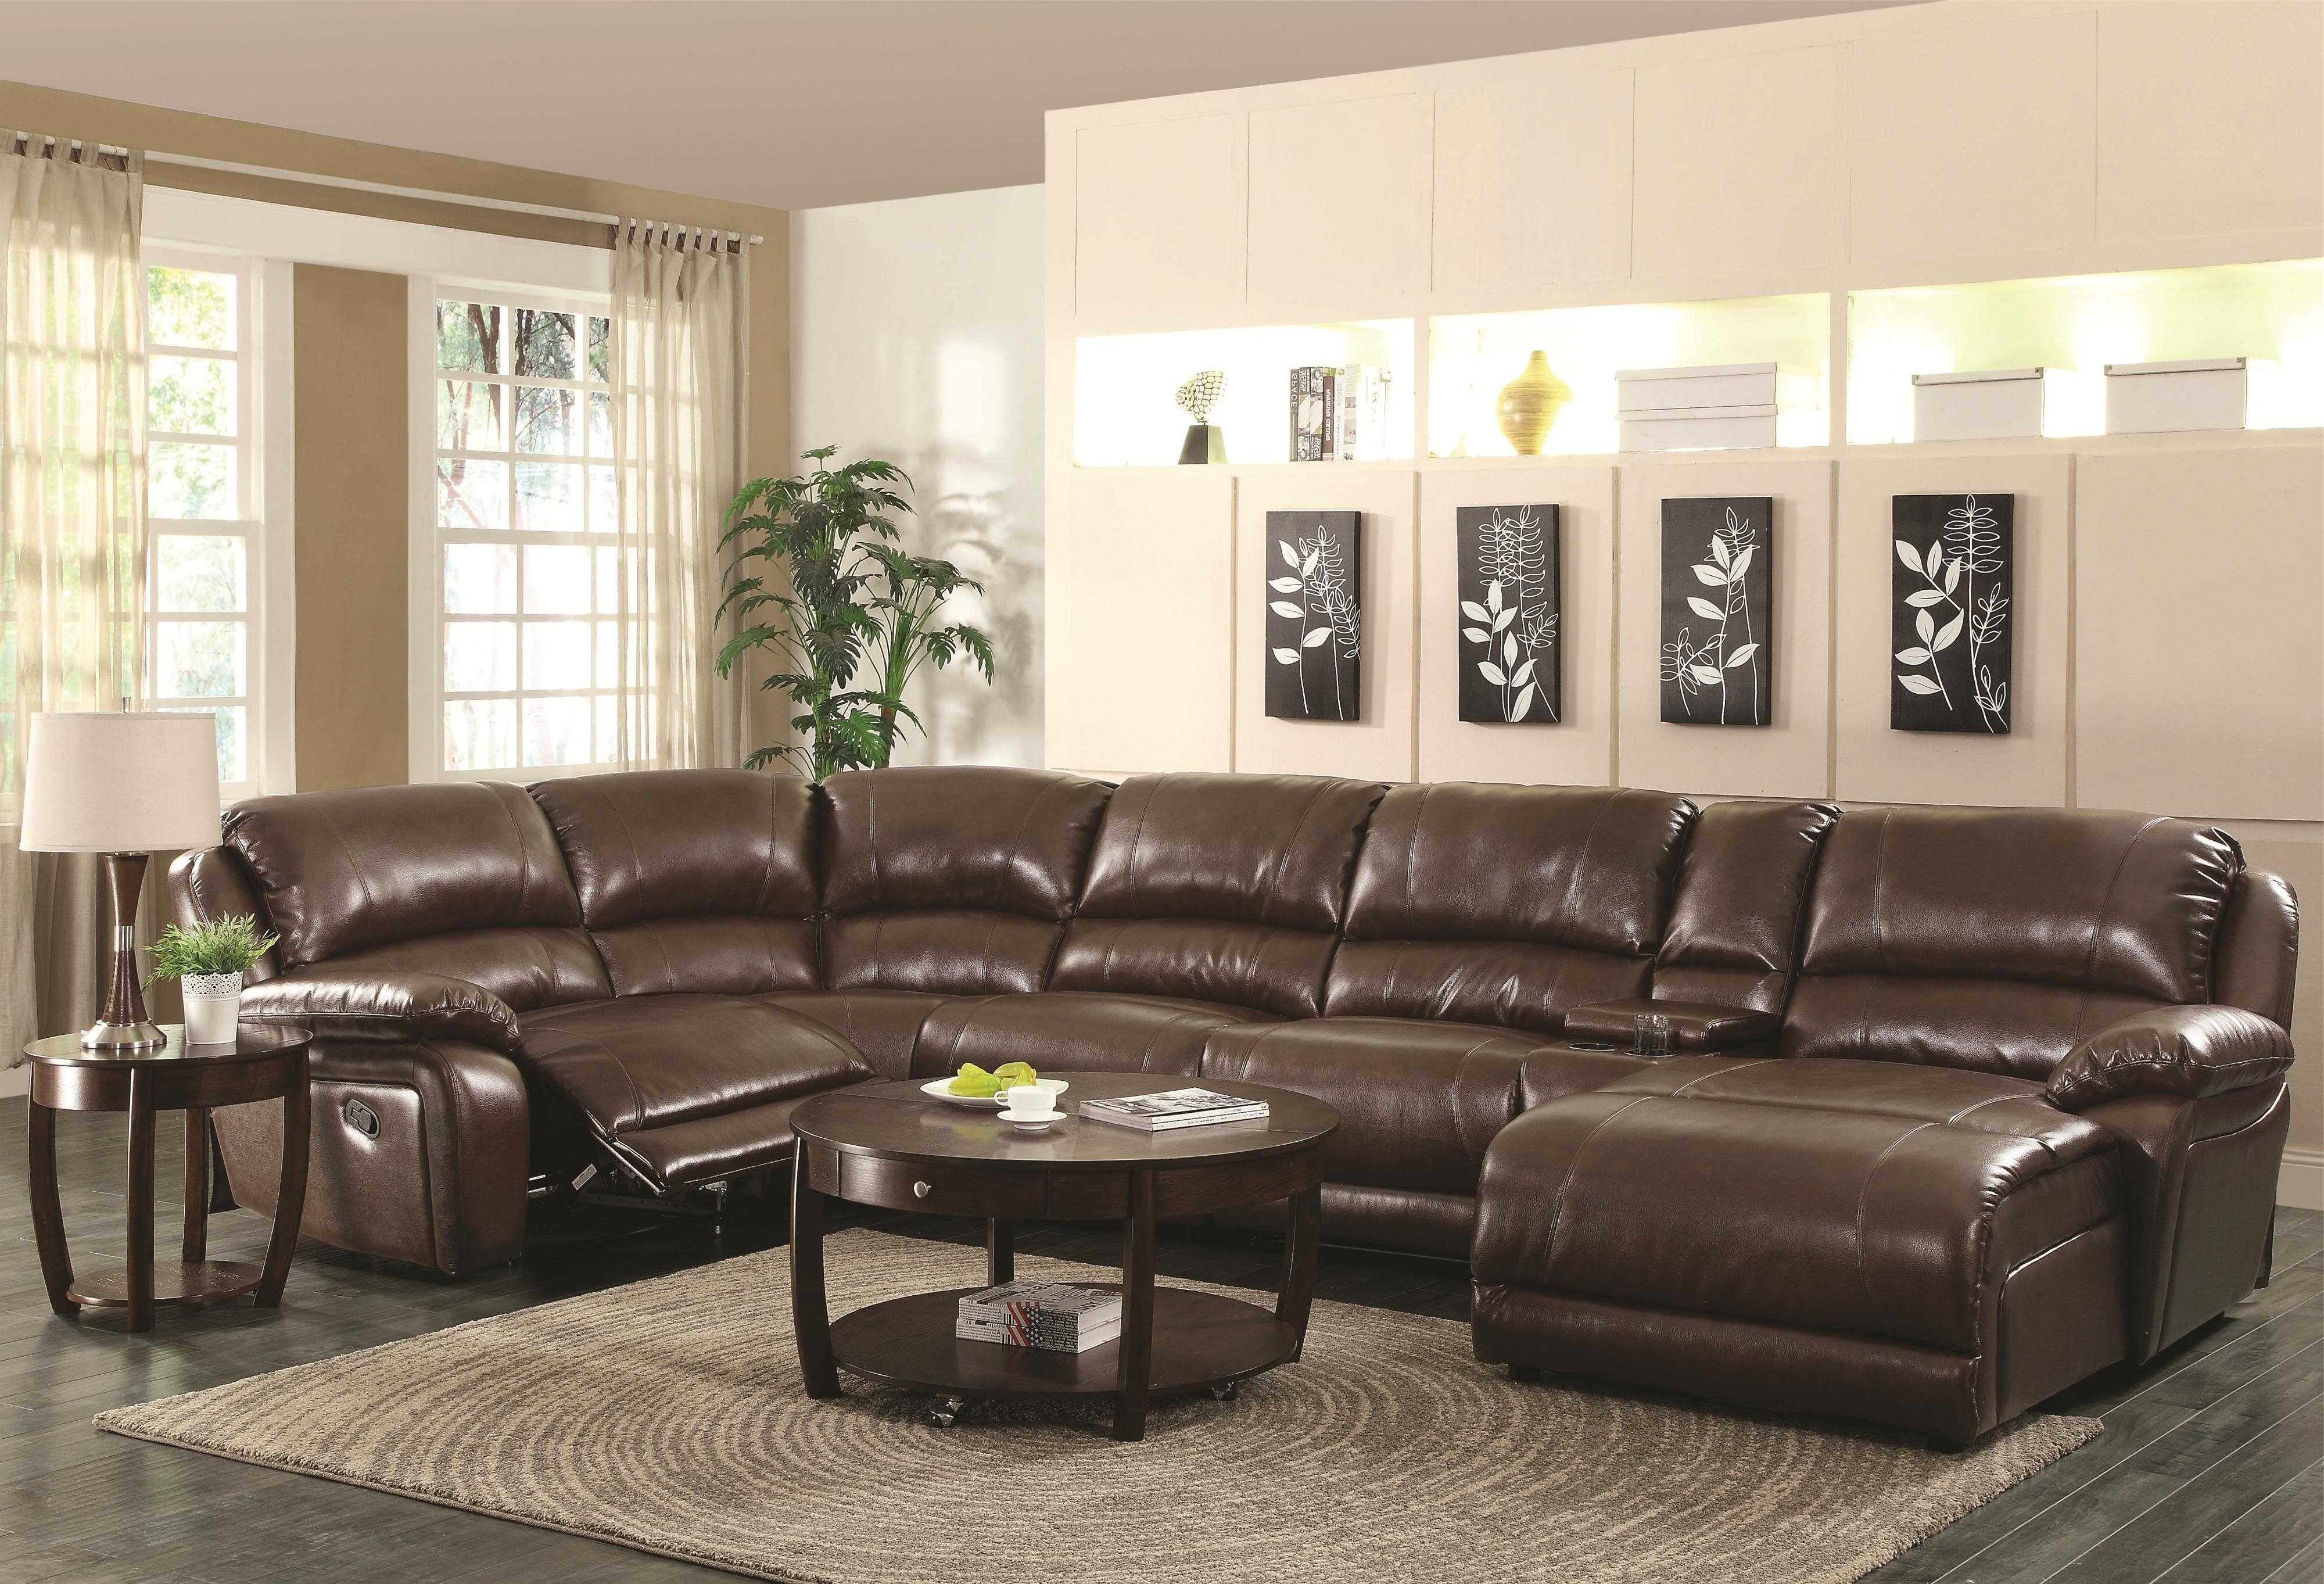 6 Piece Leather Sectional With Recliner And Chaise Lounge Within Most Up To Date 6 Piece Leather Sectional Sofas (Gallery 1 of 20)